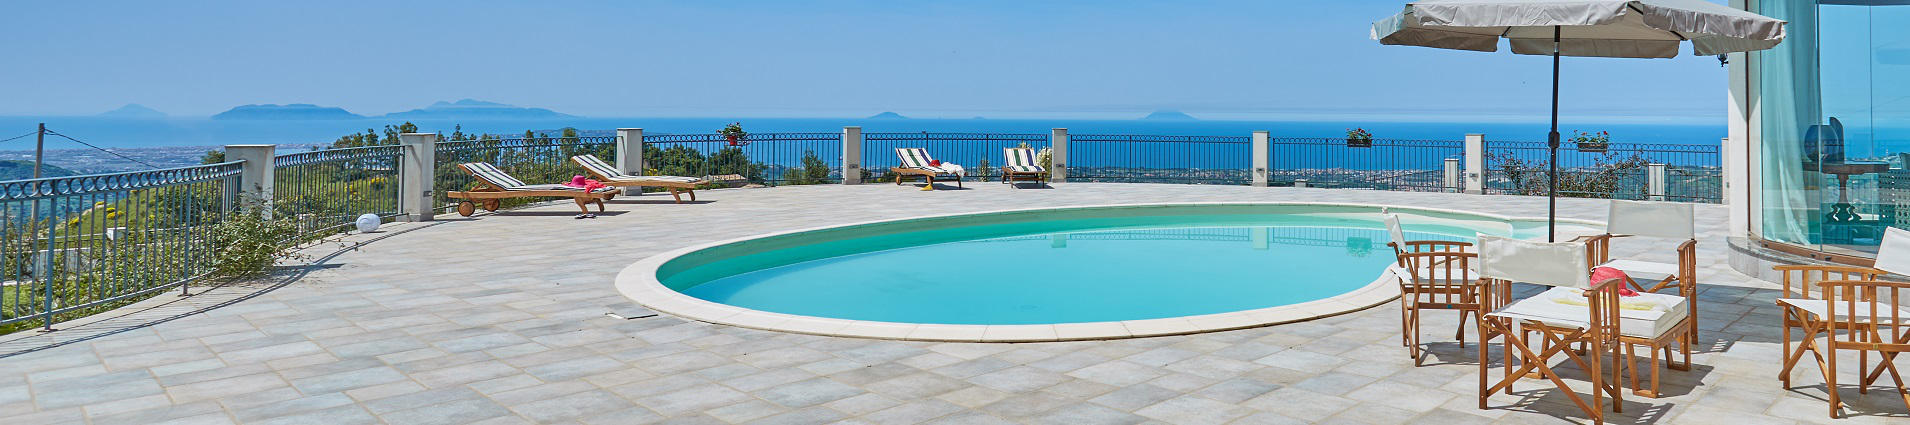 Self-catering villas to rent in Sicily